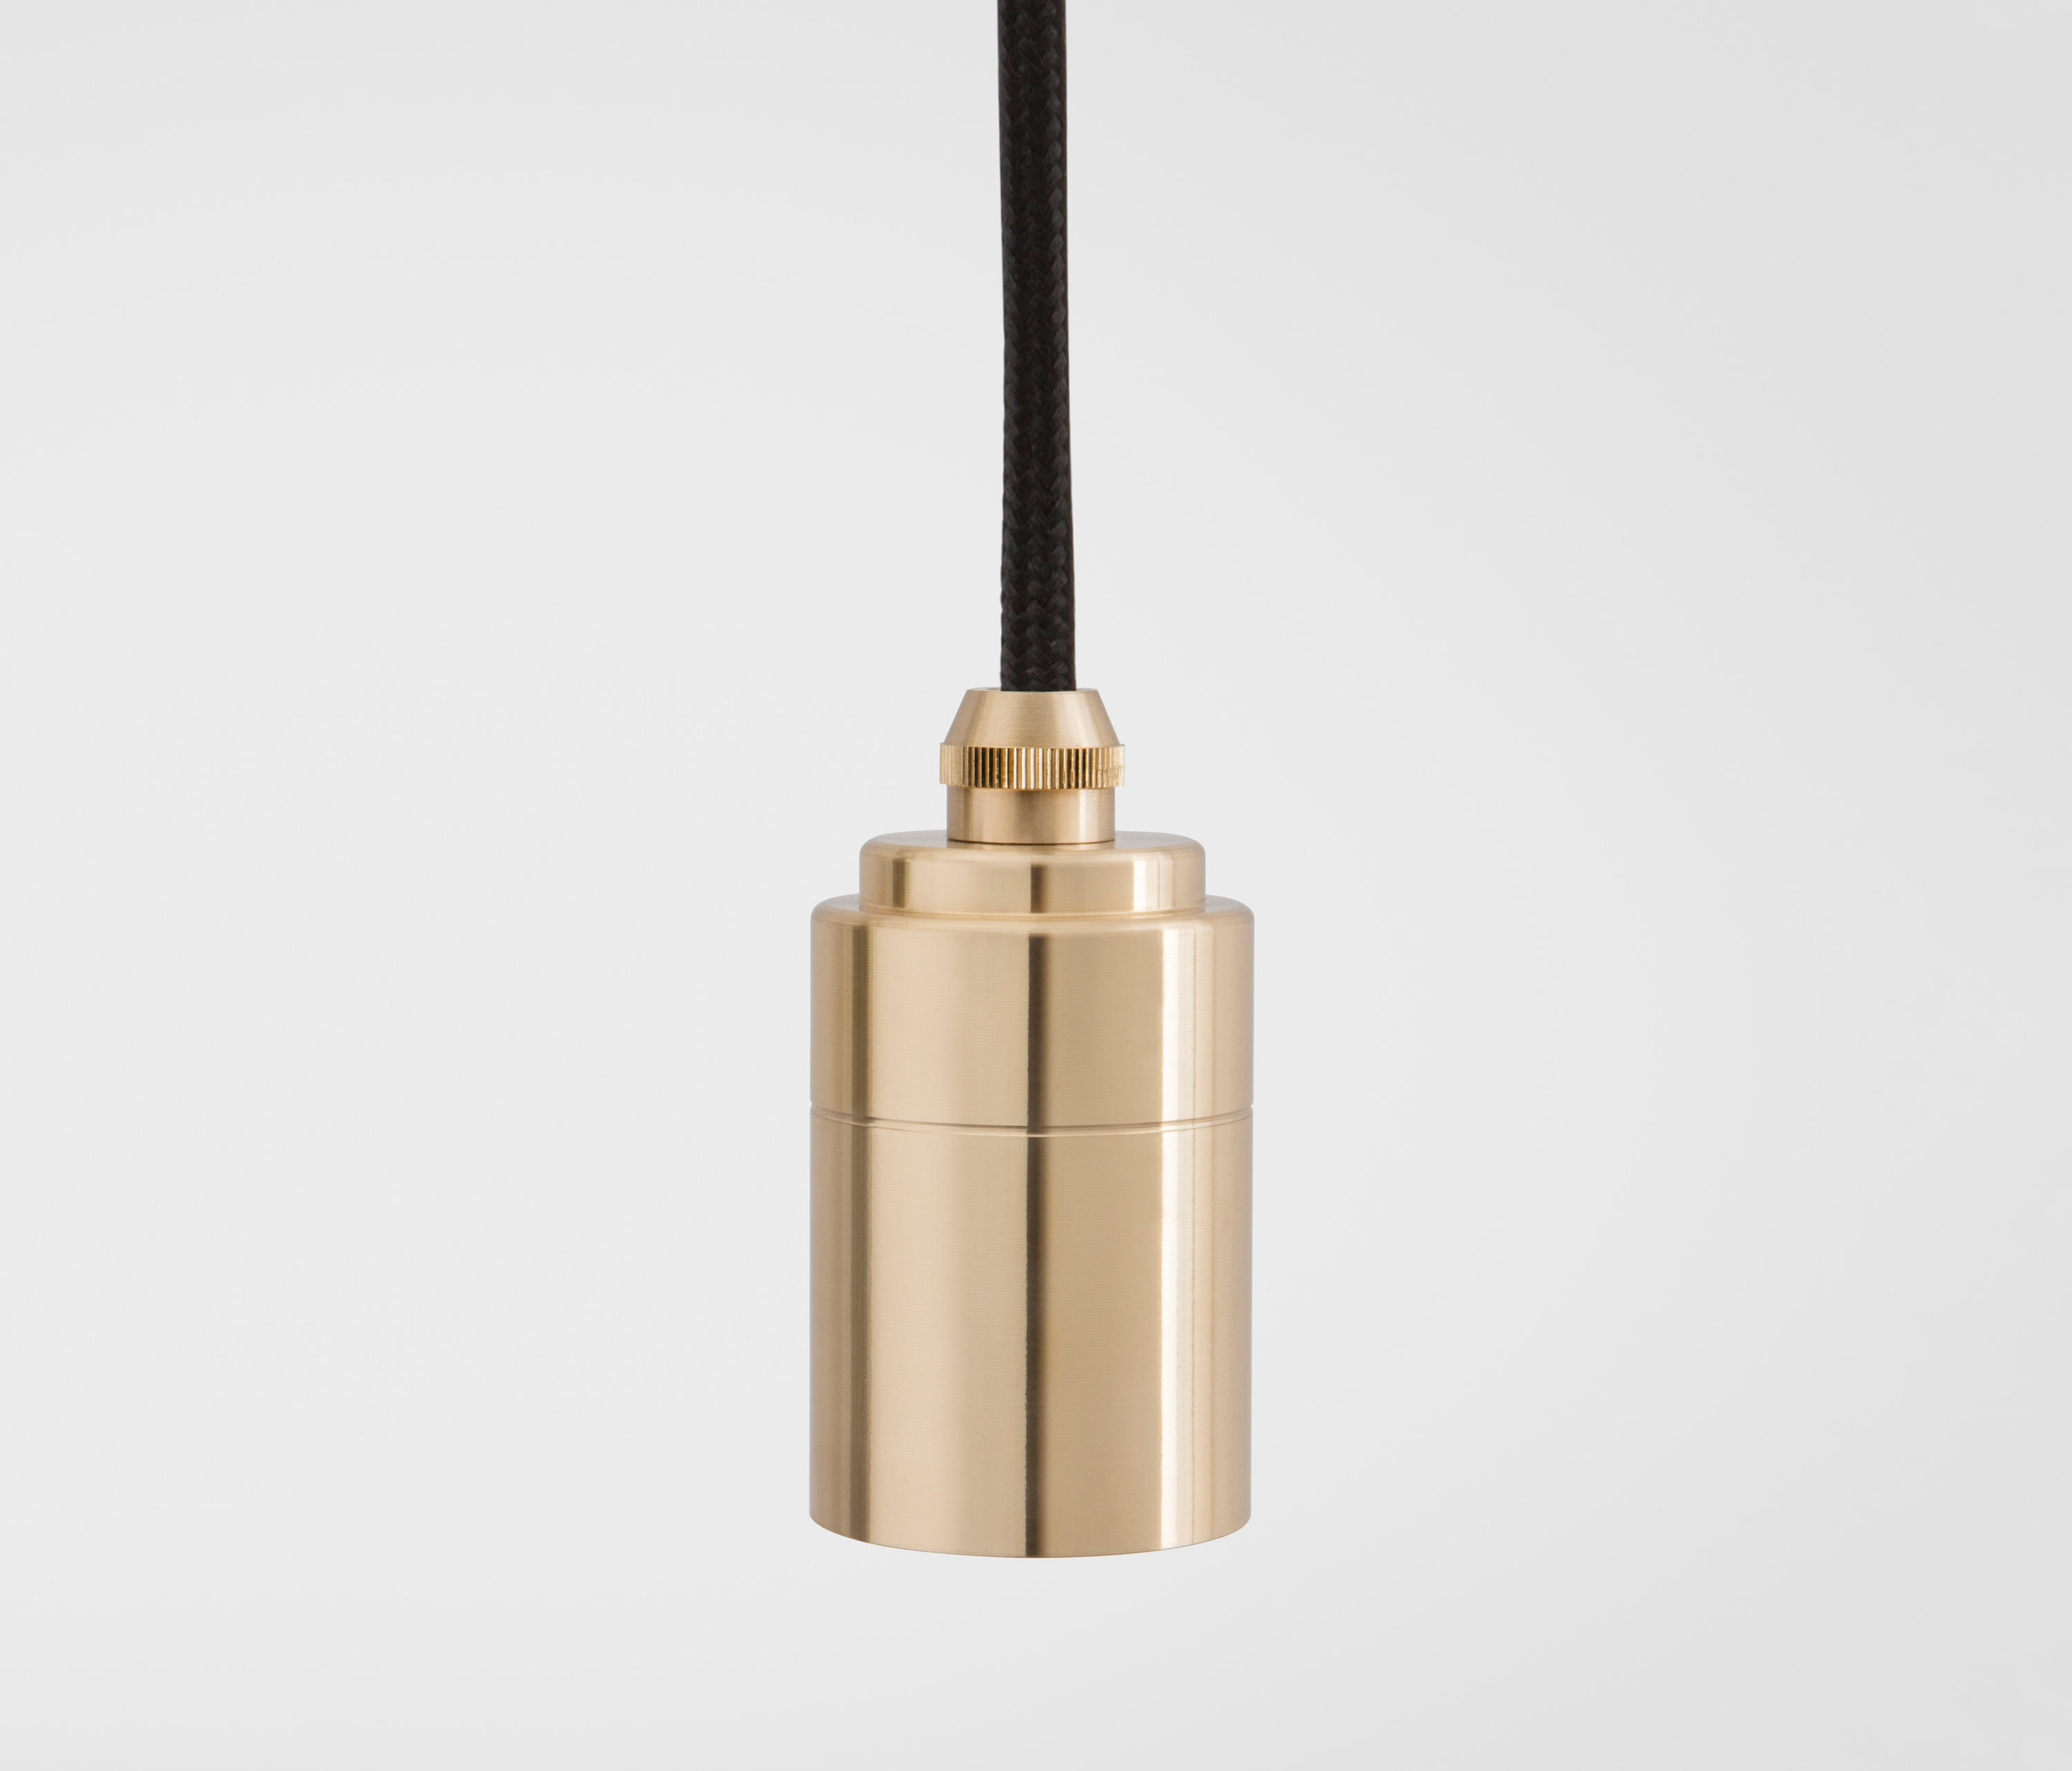 lighting furniture htm brass pendant from coleman hr nuevo jude